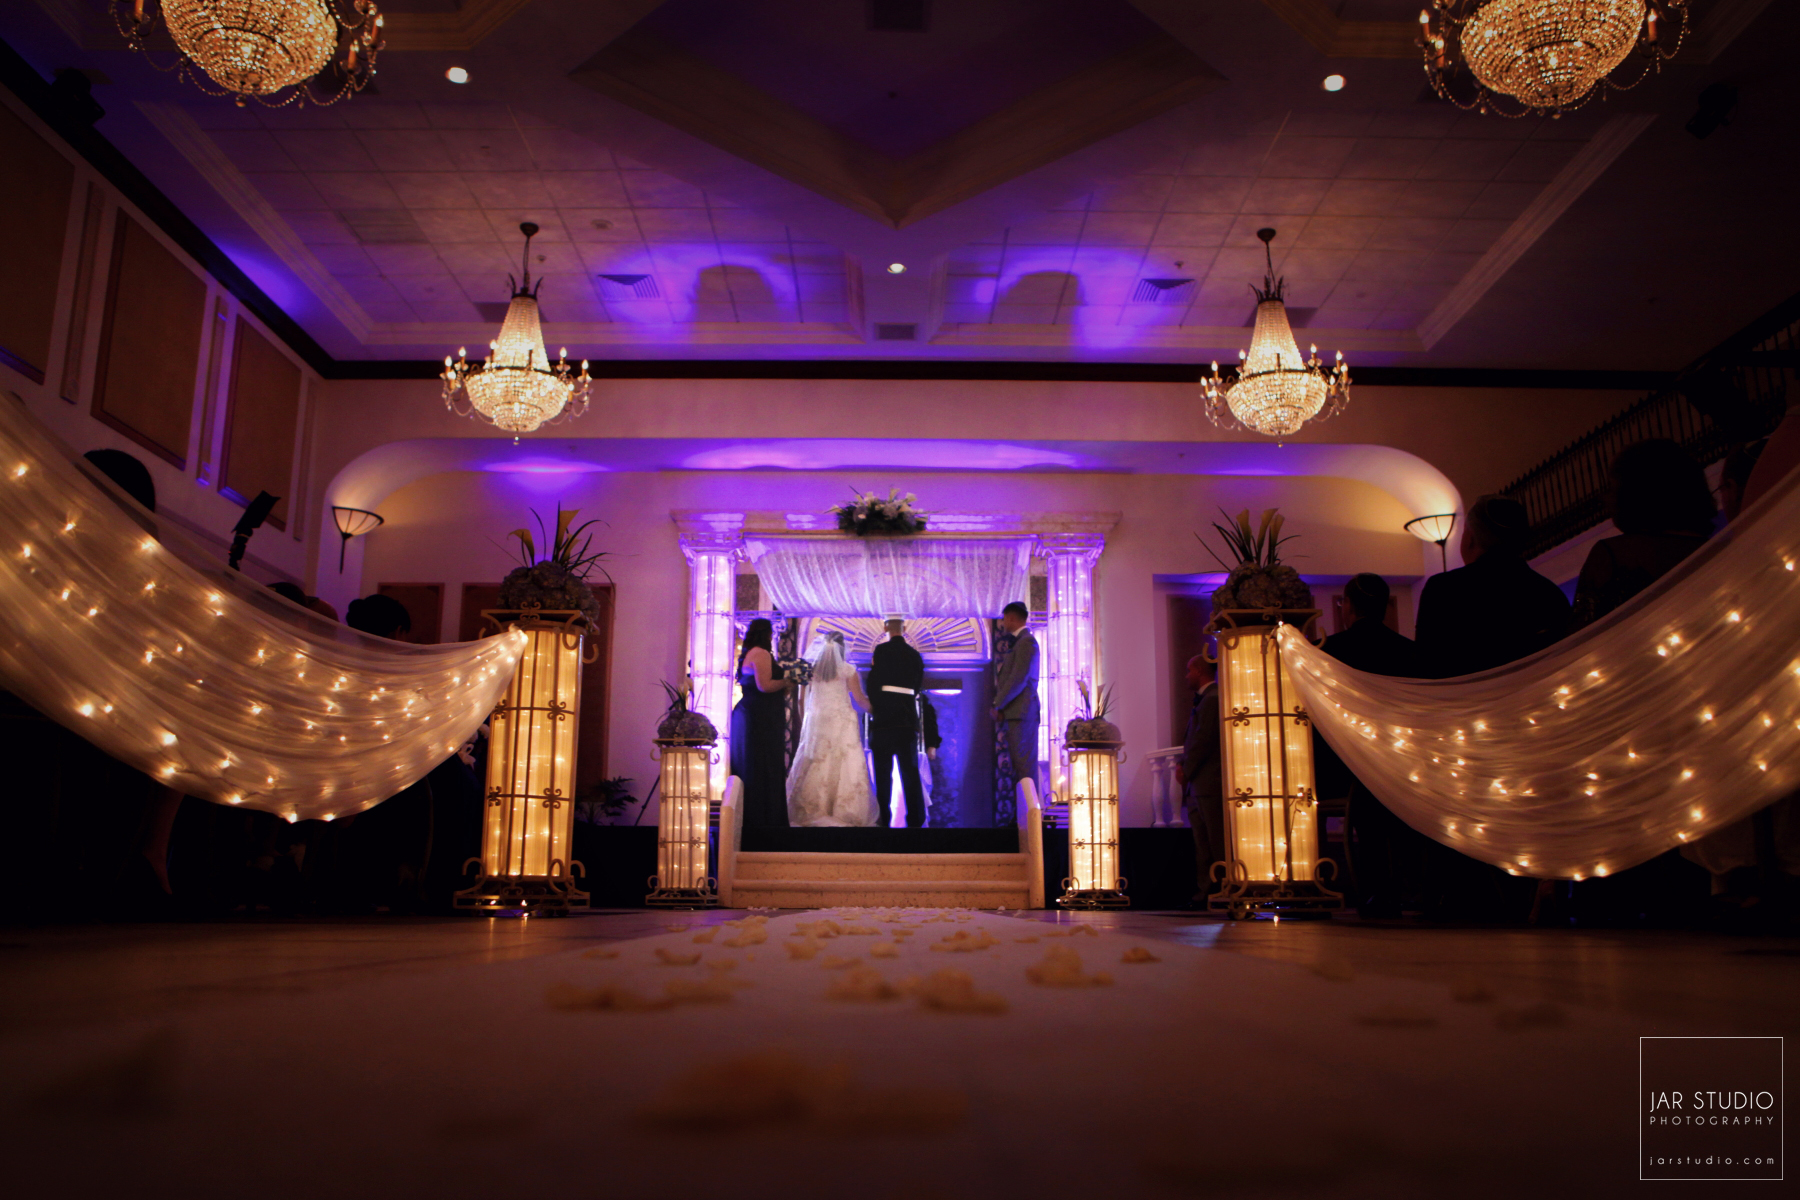 14-orlando-elegant-wedding-venue-lighting-ceremony-jarstudio-photography.JPG